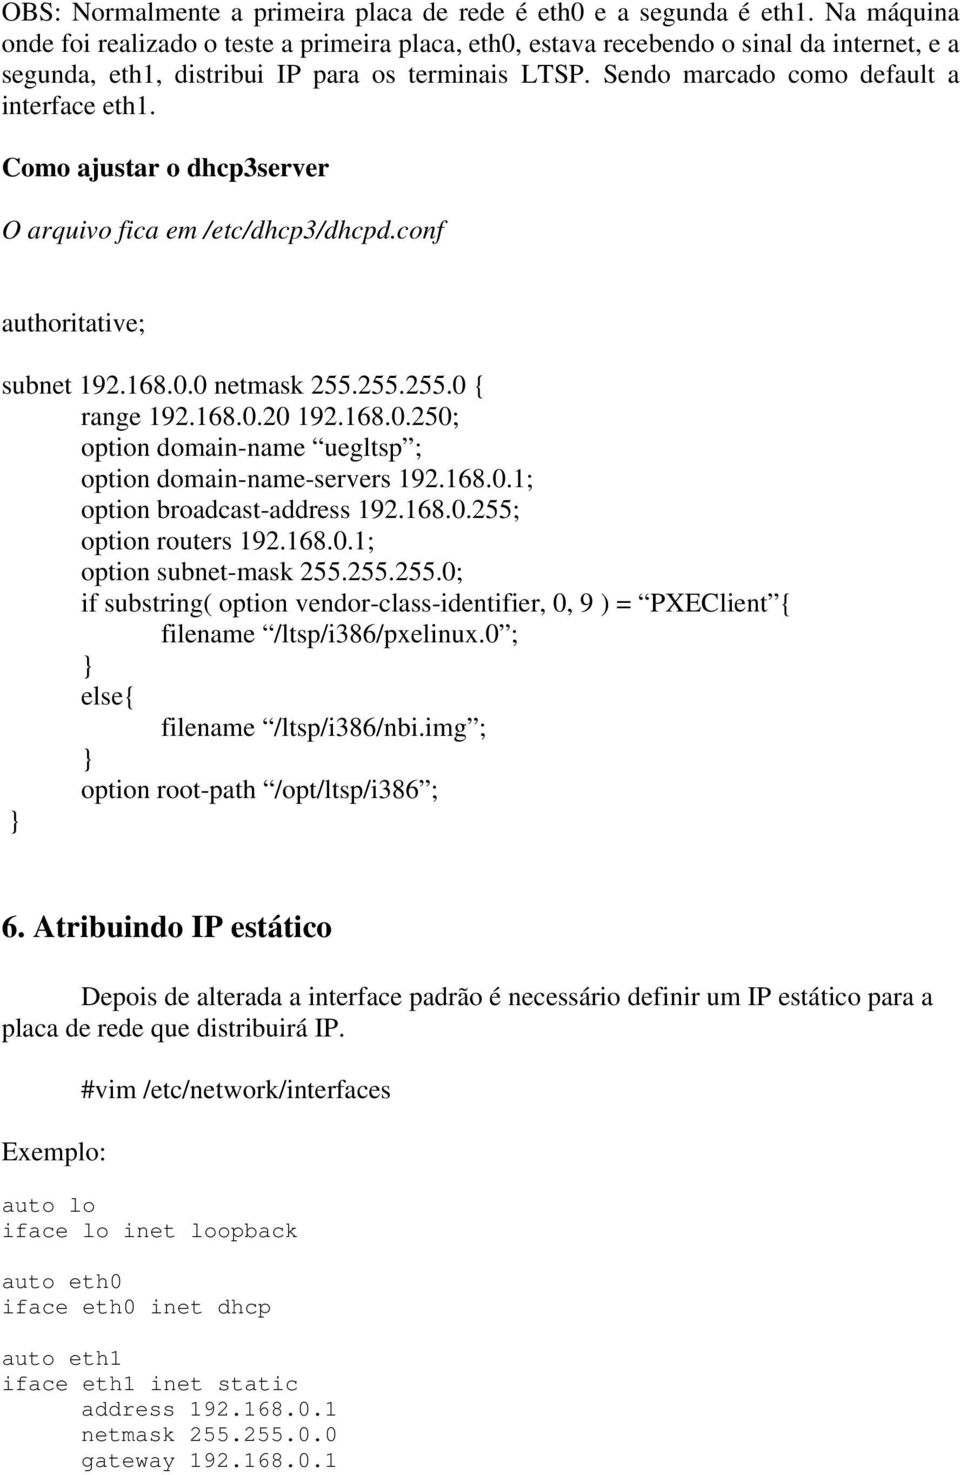 Como ajustar o dhcp3server O arquivo fica em /etc/dhcp3/dhcpd.conf authoritative; subnet 192.168.0.0 netmask 255.255.255.0 { range 192.168.0.20 192.168.0.250; option domain-name uegltsp ; option domain-name-servers 192.